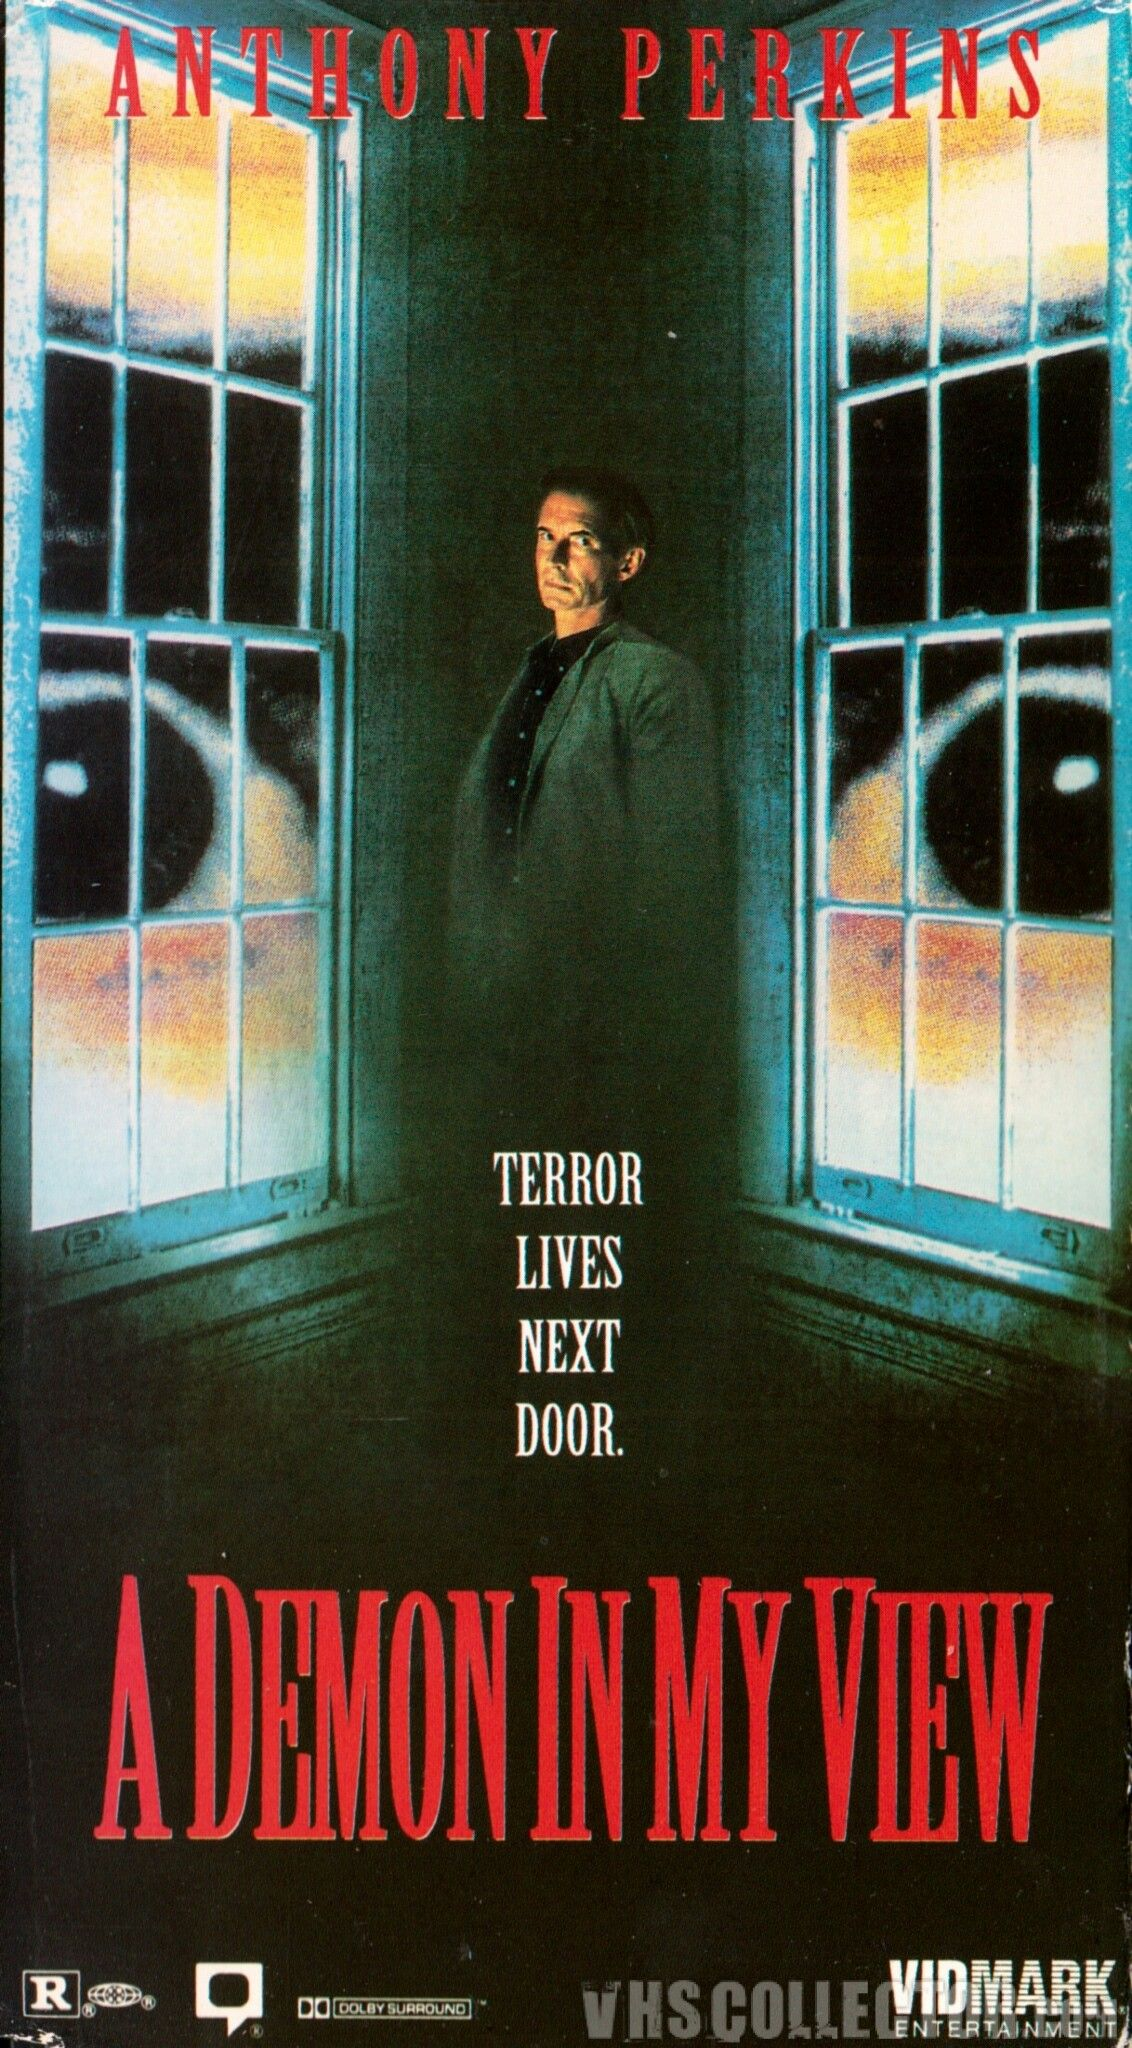 A Demon in my View (1992) Movie posters vintage, Horror